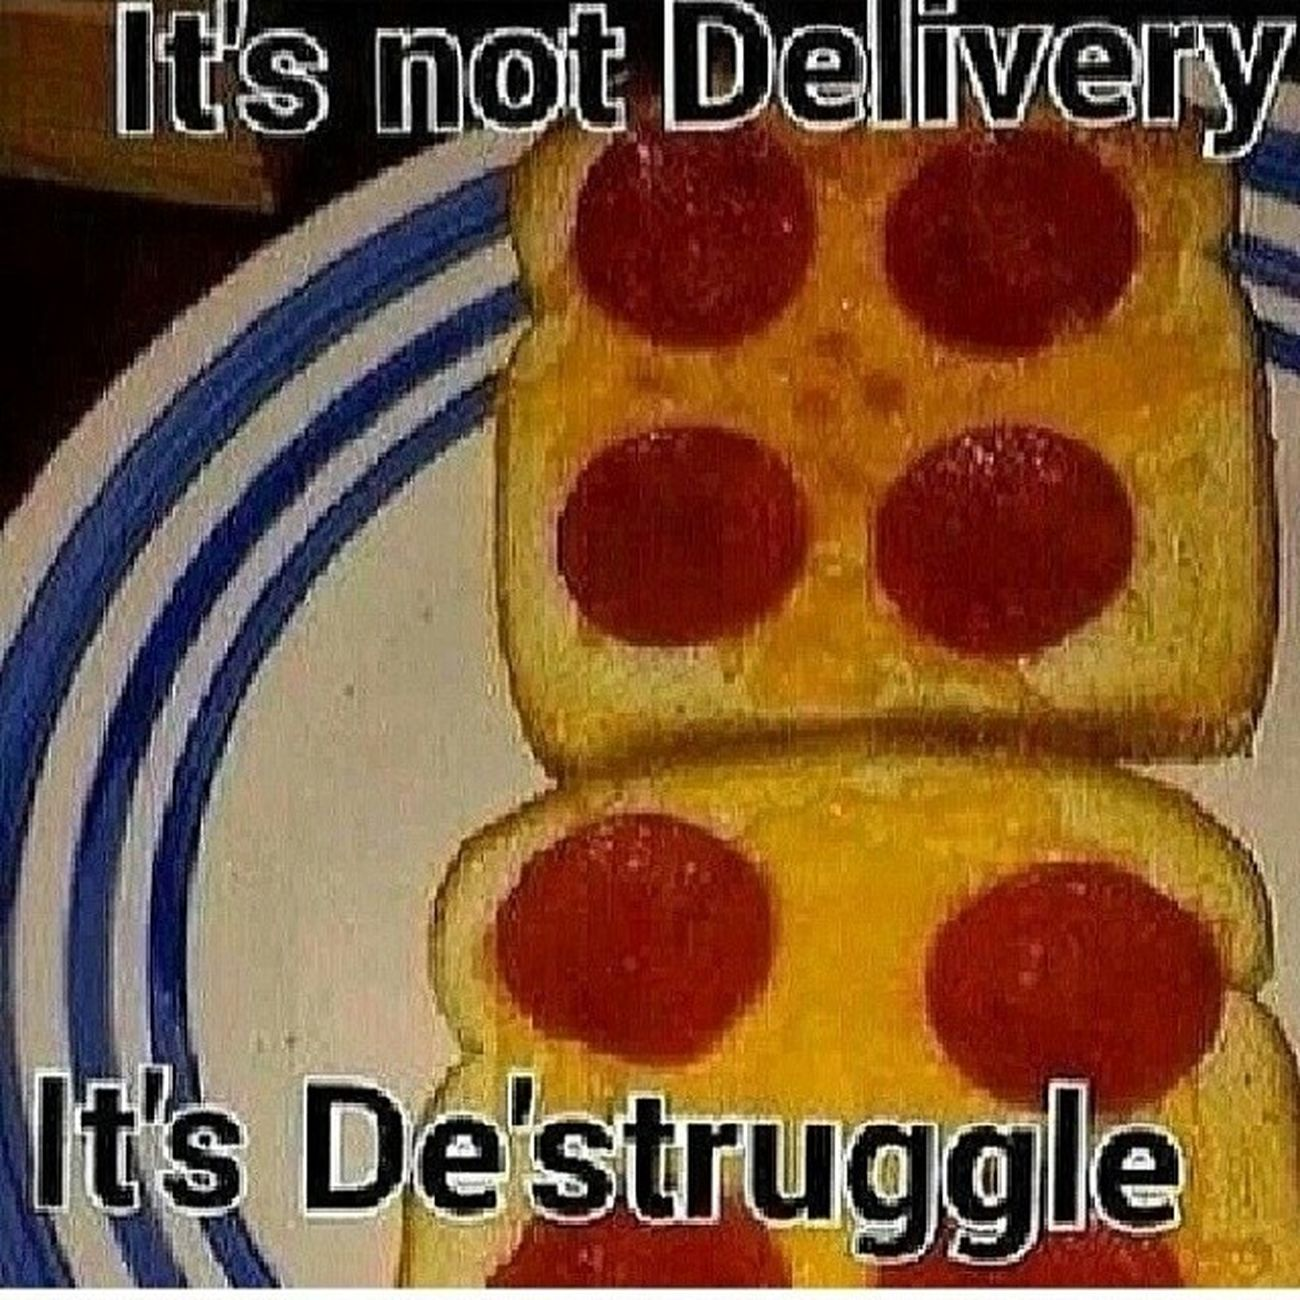 lmao...damn shame Thestruggle  Thestruggleis real Pizza Bread pepperoni ghetto lmfao kmsl tagfortags like4likes instahysterical